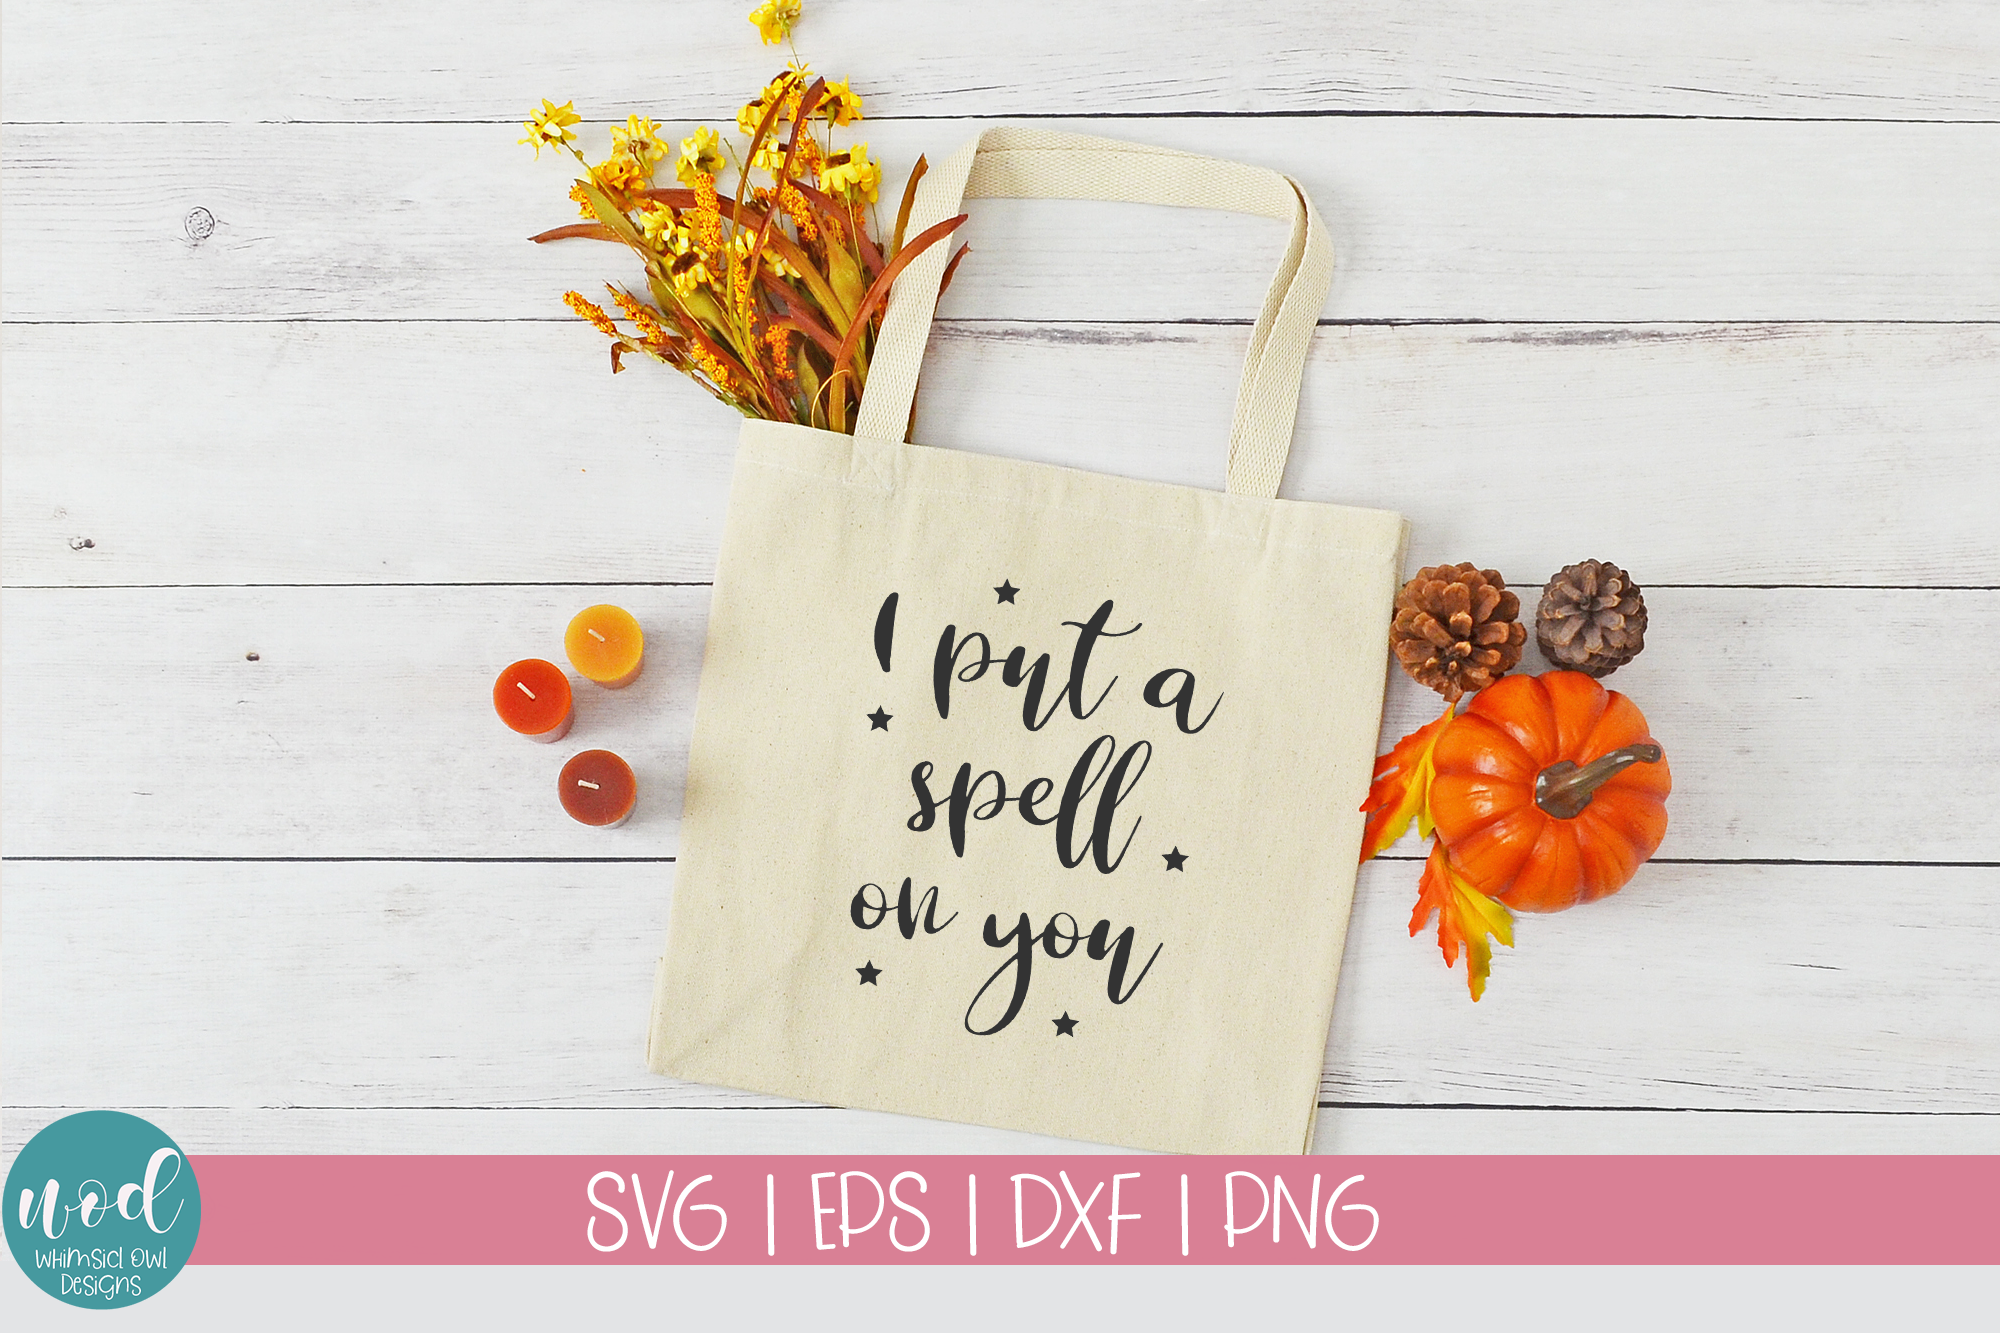 I Put A Spell On You SVG File example image 2